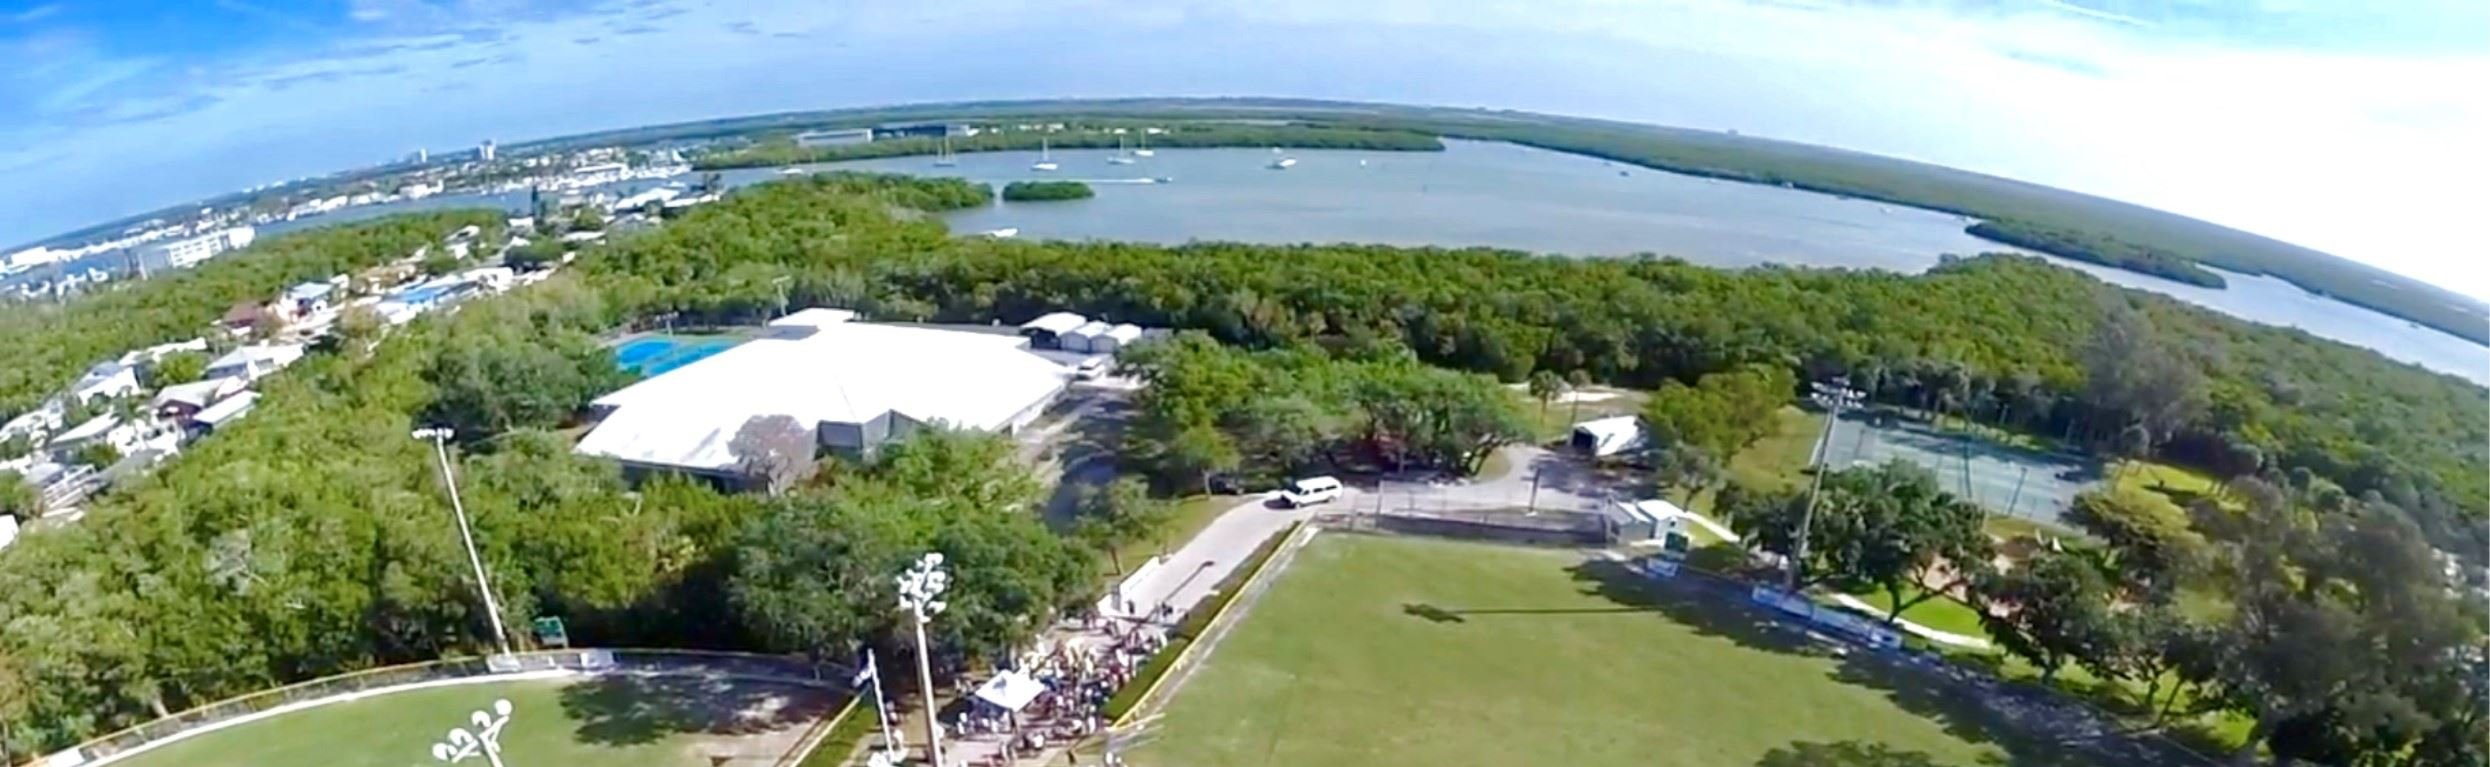 Aerial of Bay Oaks